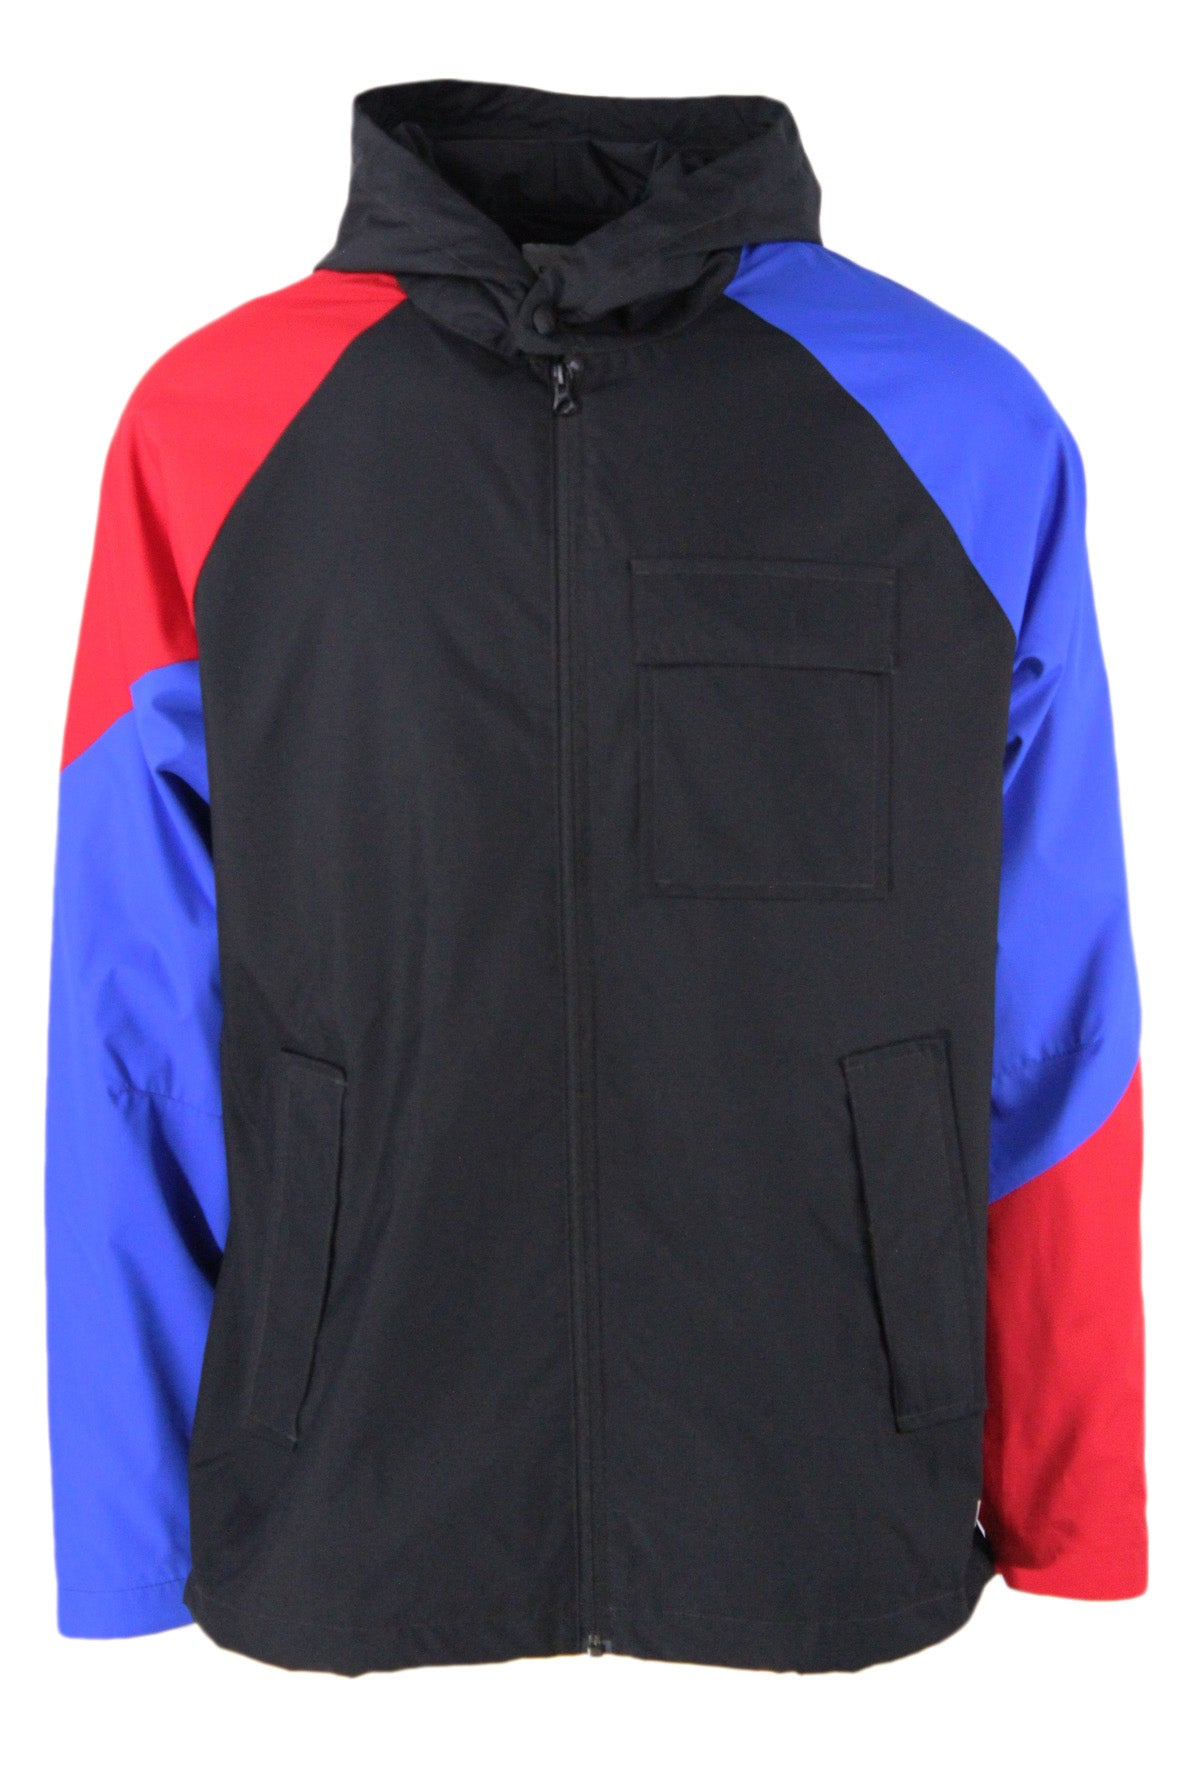 converse black/red/blue colorblock zip up hooded jacket. features logos printed at left shoulder/left side above hem with chest/hand pockets at sides. drawstrings at hood/hem with snaps at cuffs and collar. fully lined.